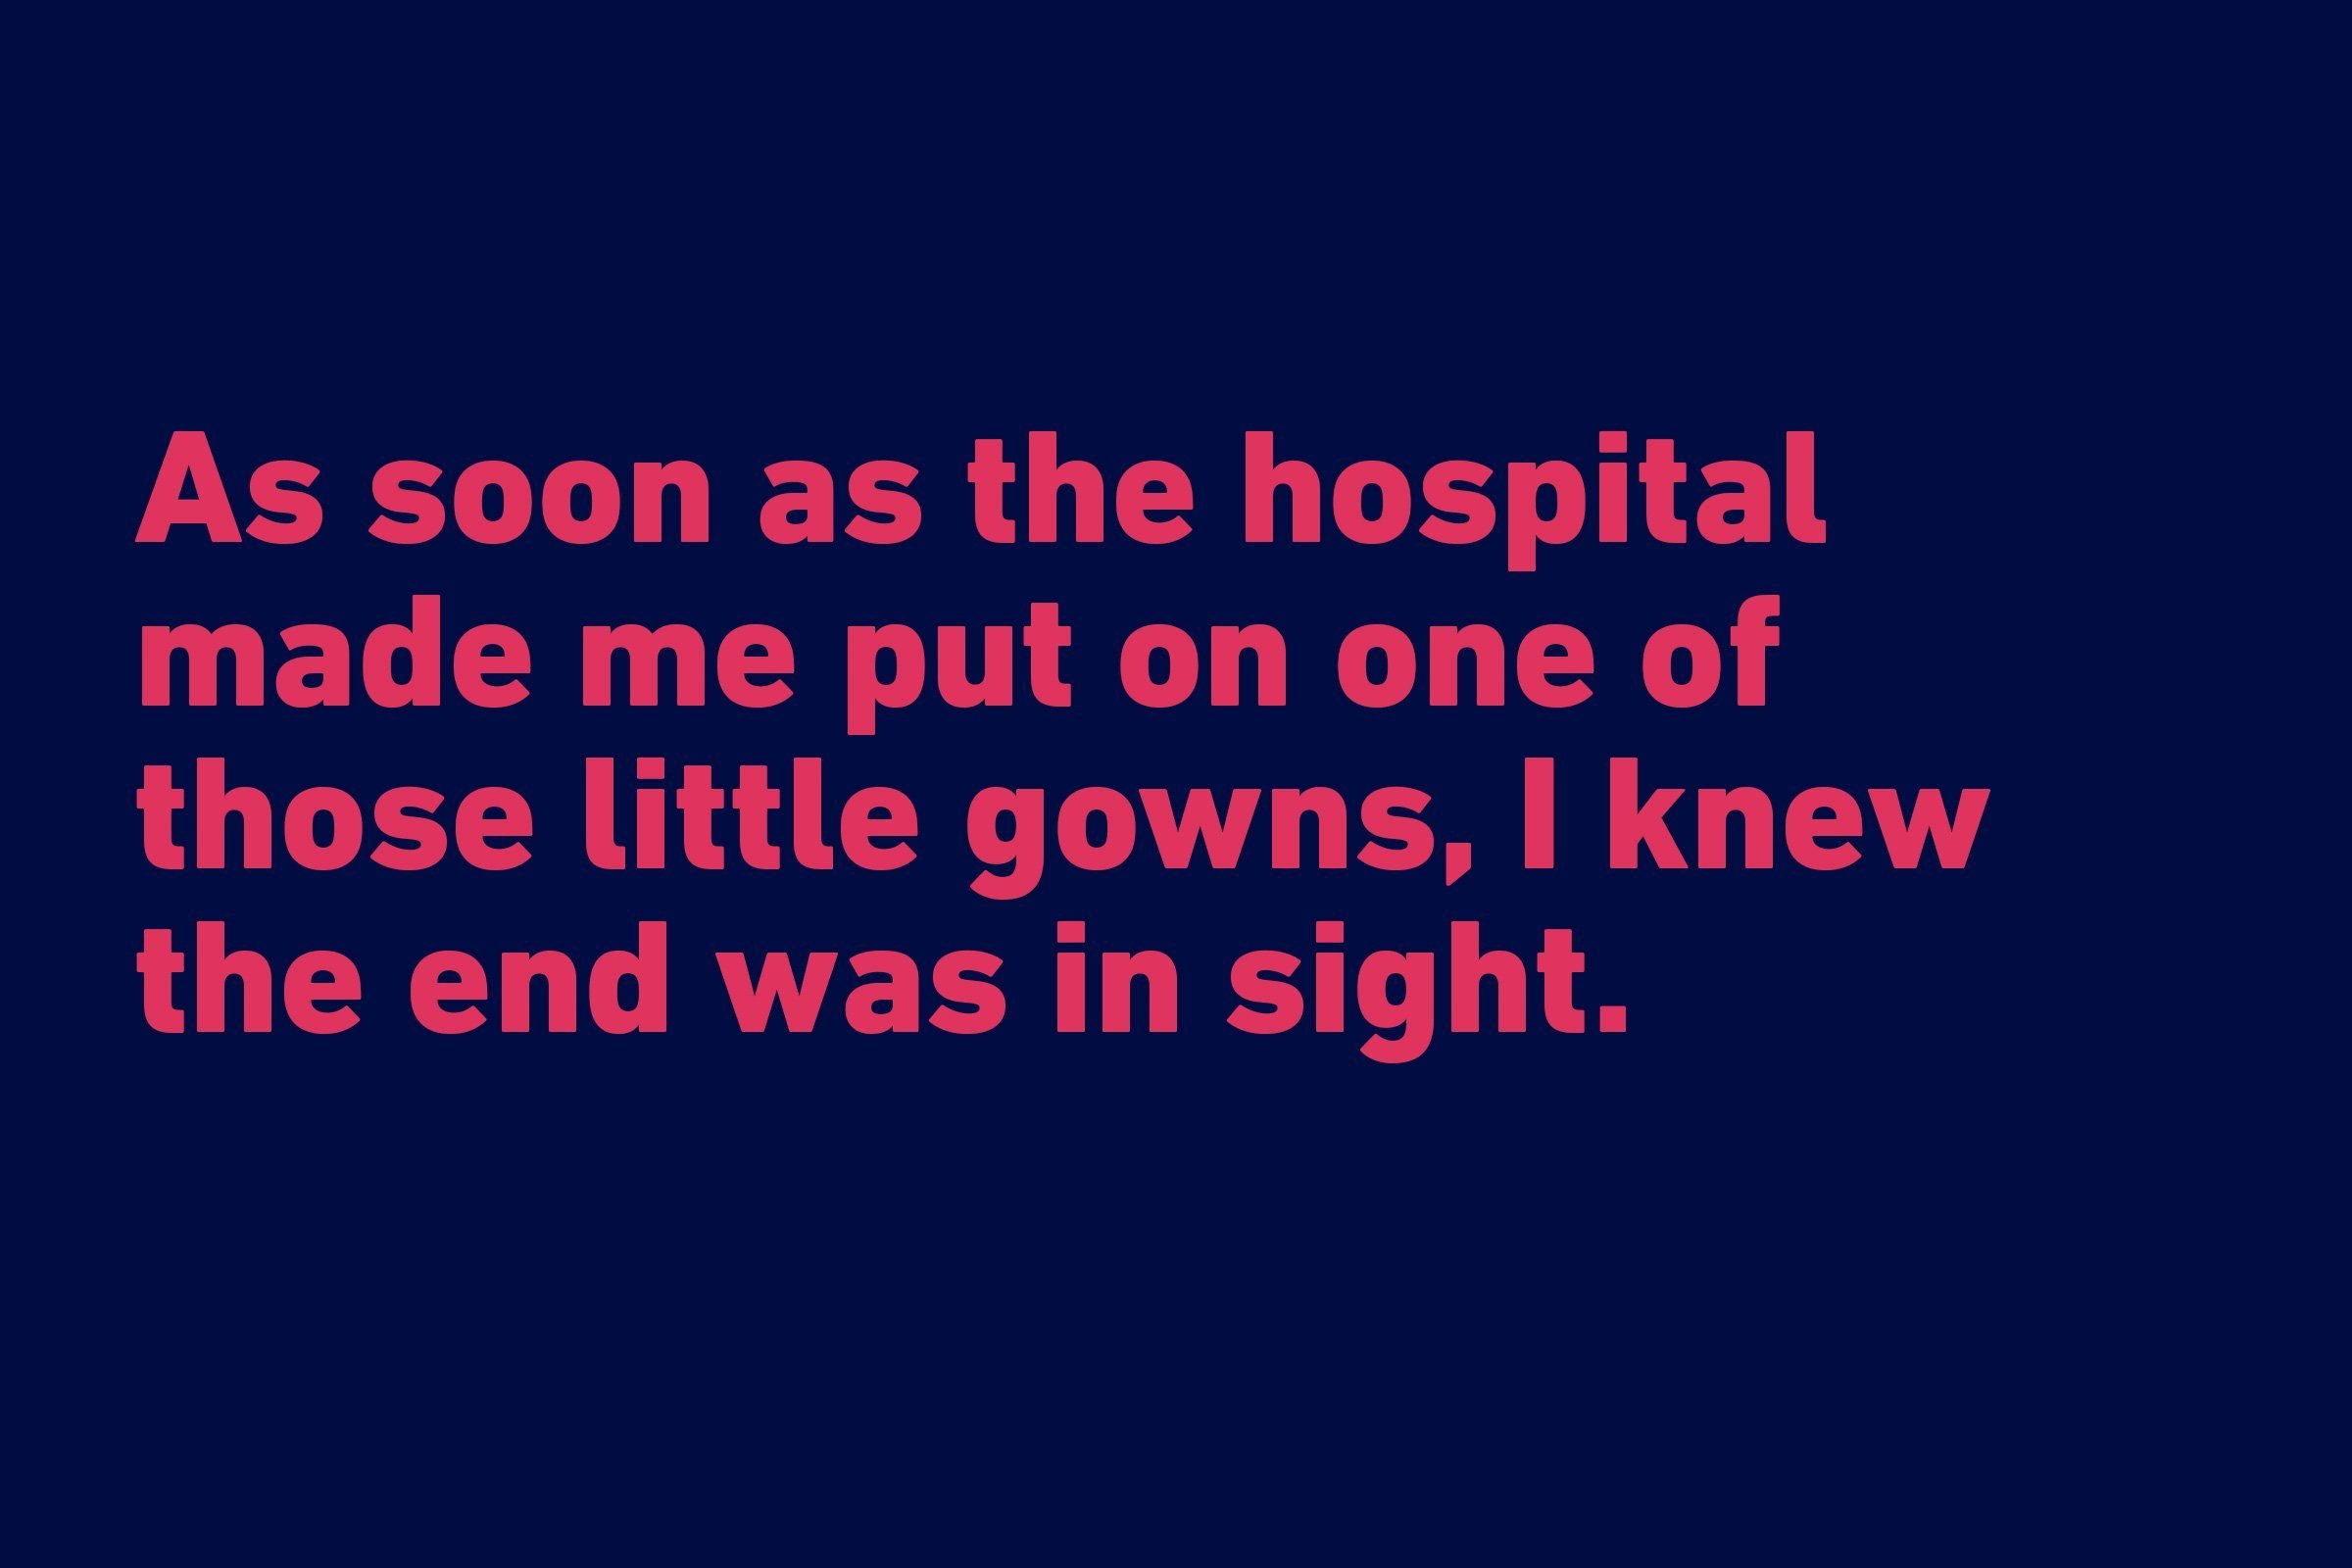 Funniest quotes of all time - hospital gown